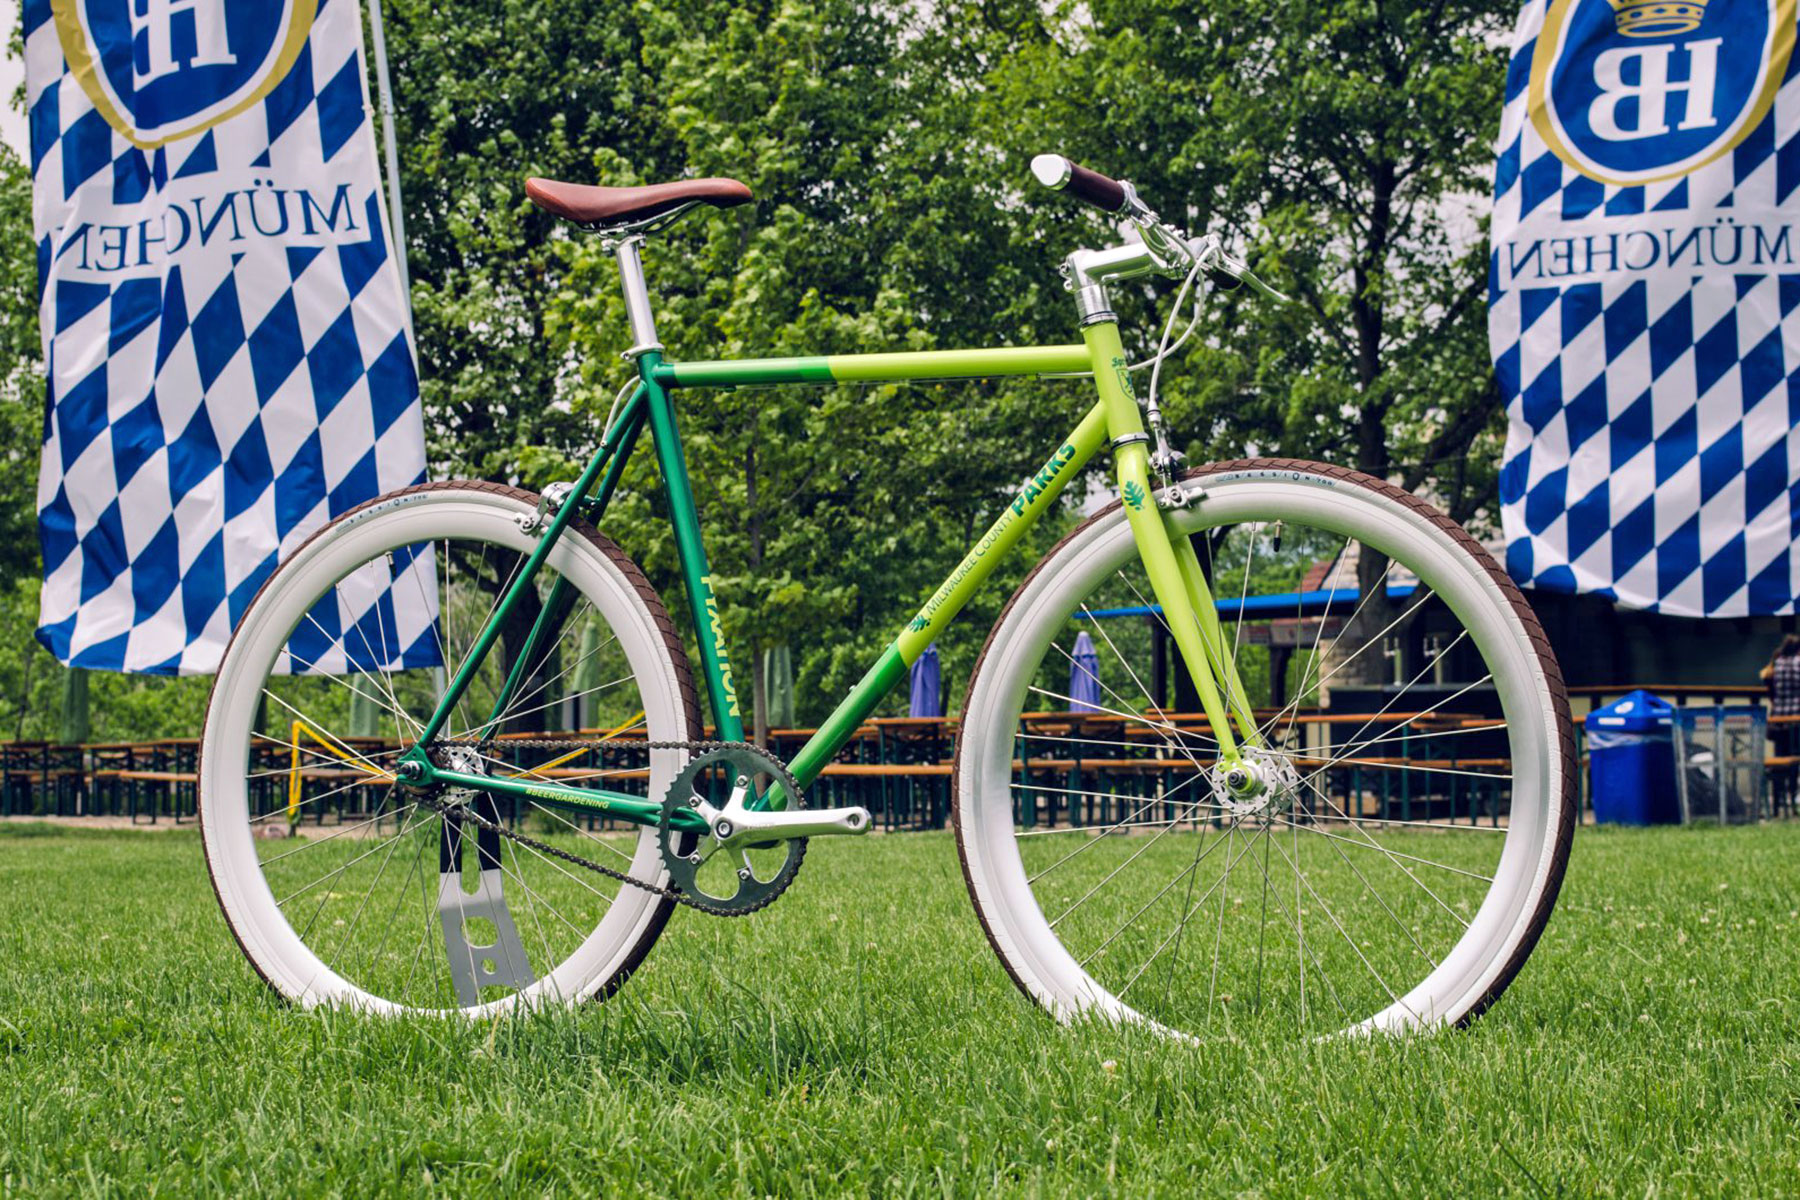 Milwaukee County Executive Chris Abele Announced That A Custom Traveling  Beer Garden Bicycle Design Will Be Revealed On June 7 At The Kletzsch Park  ...